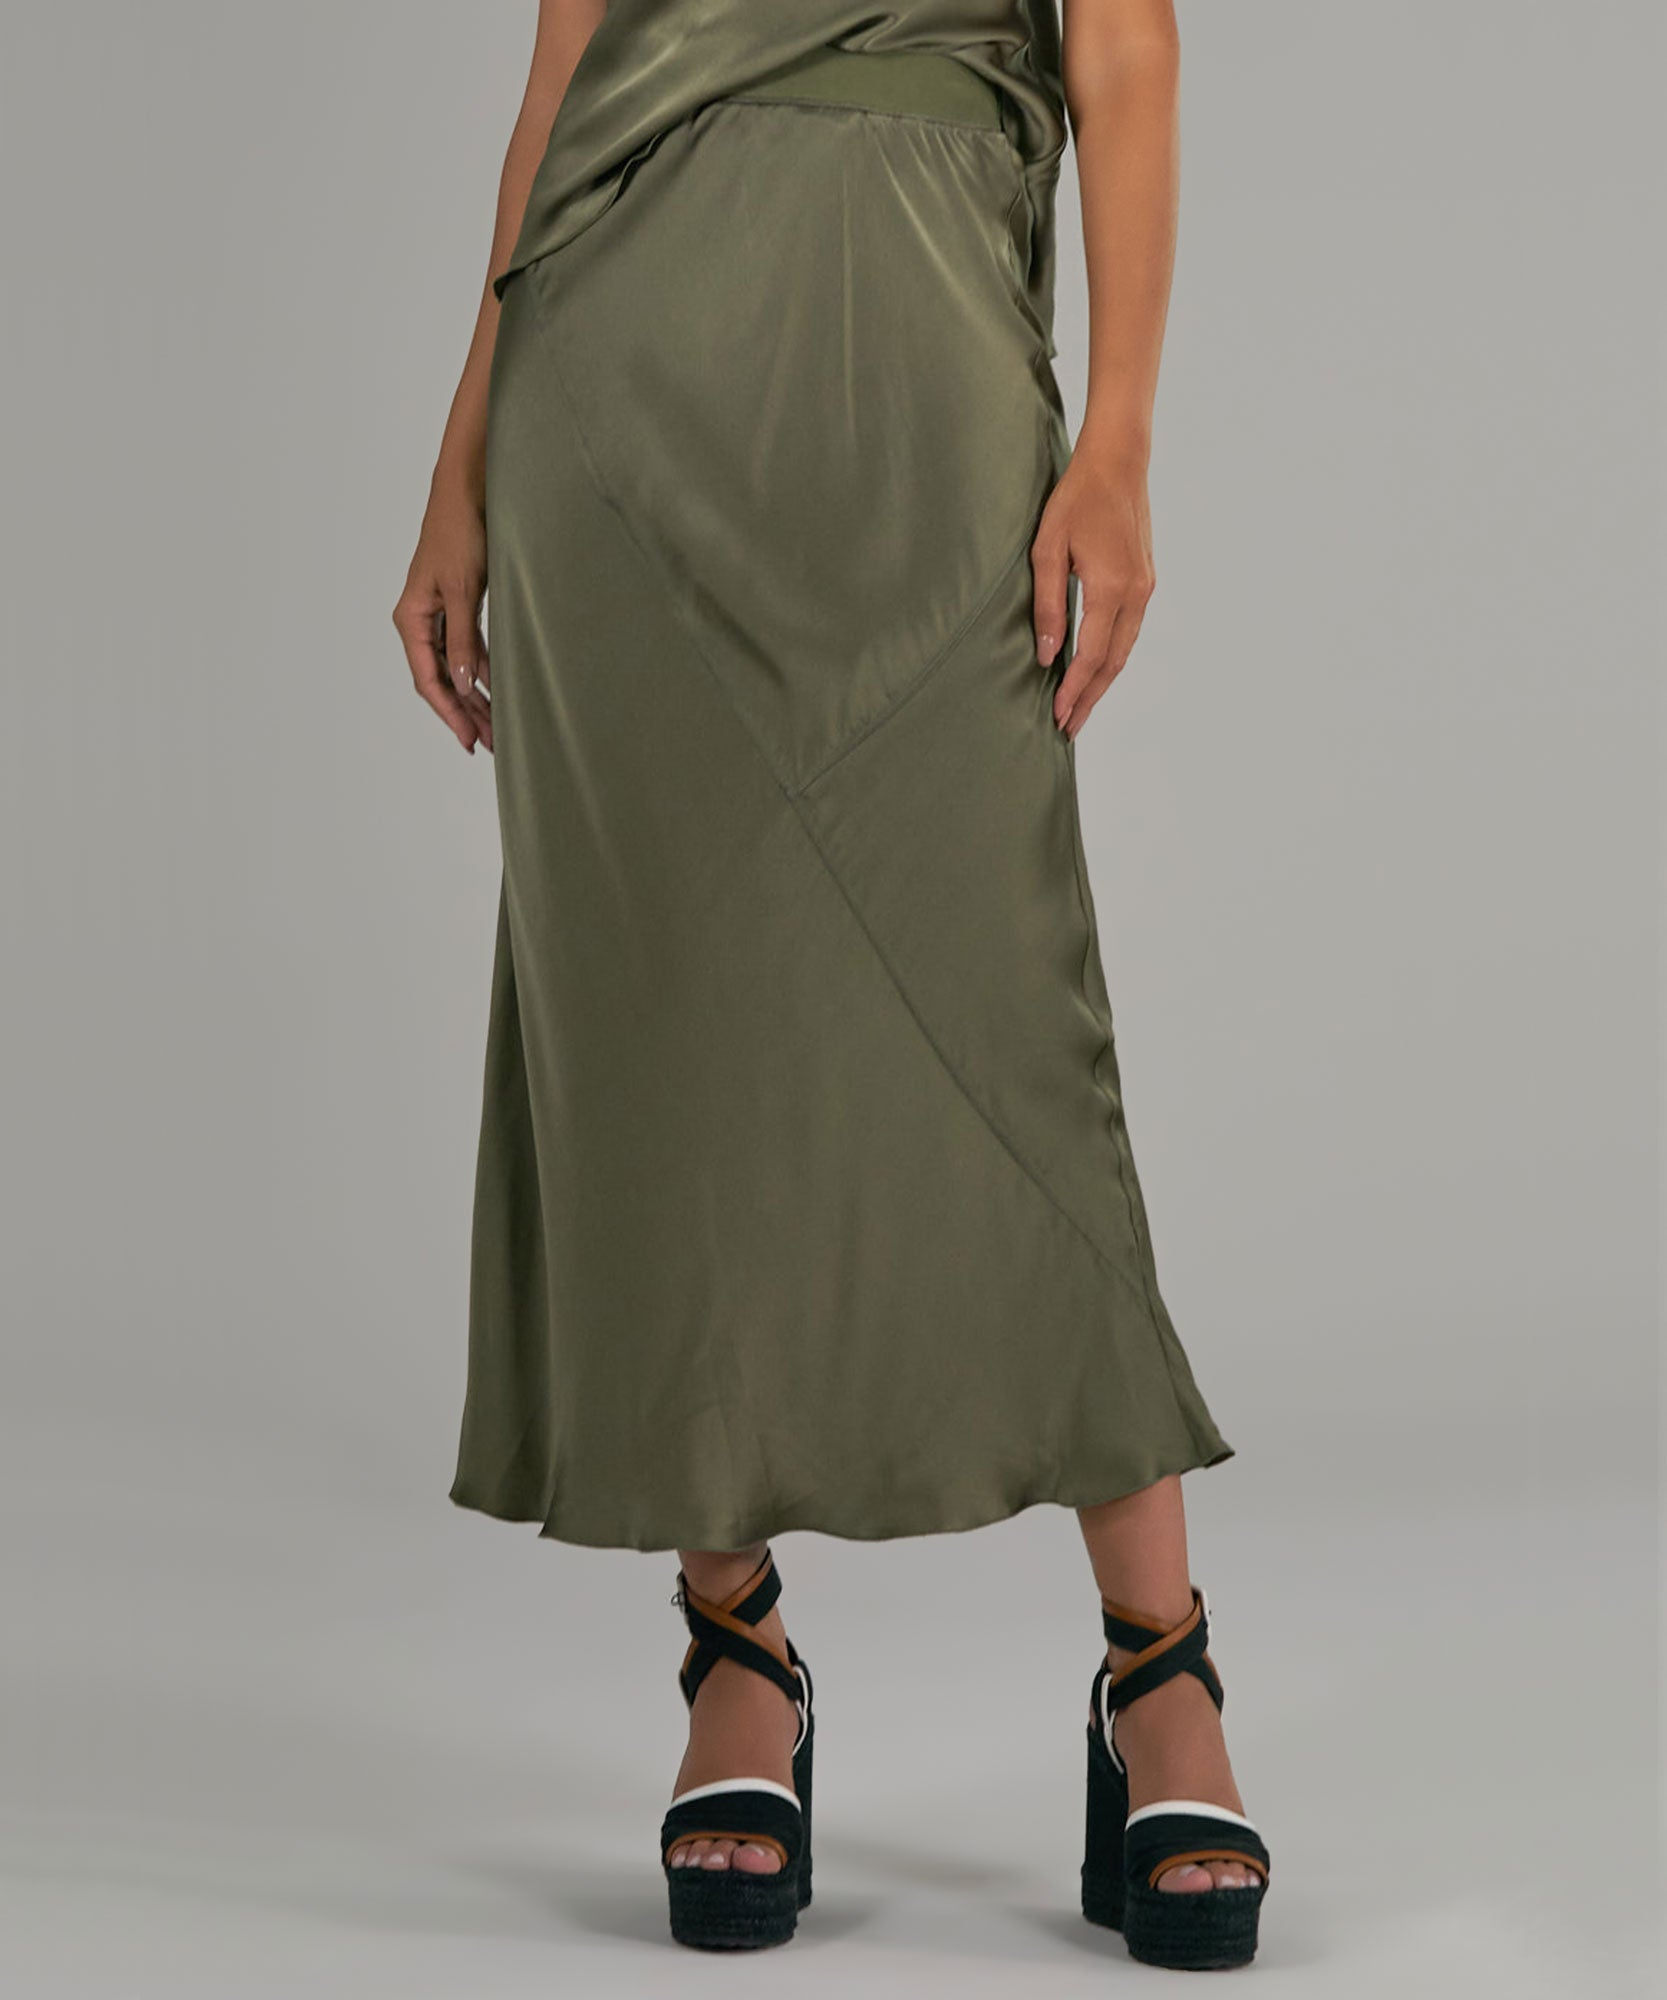 Army Silk Ankle Length Skirt - Women's Skirt by ATM Anthony Thomas Melillo